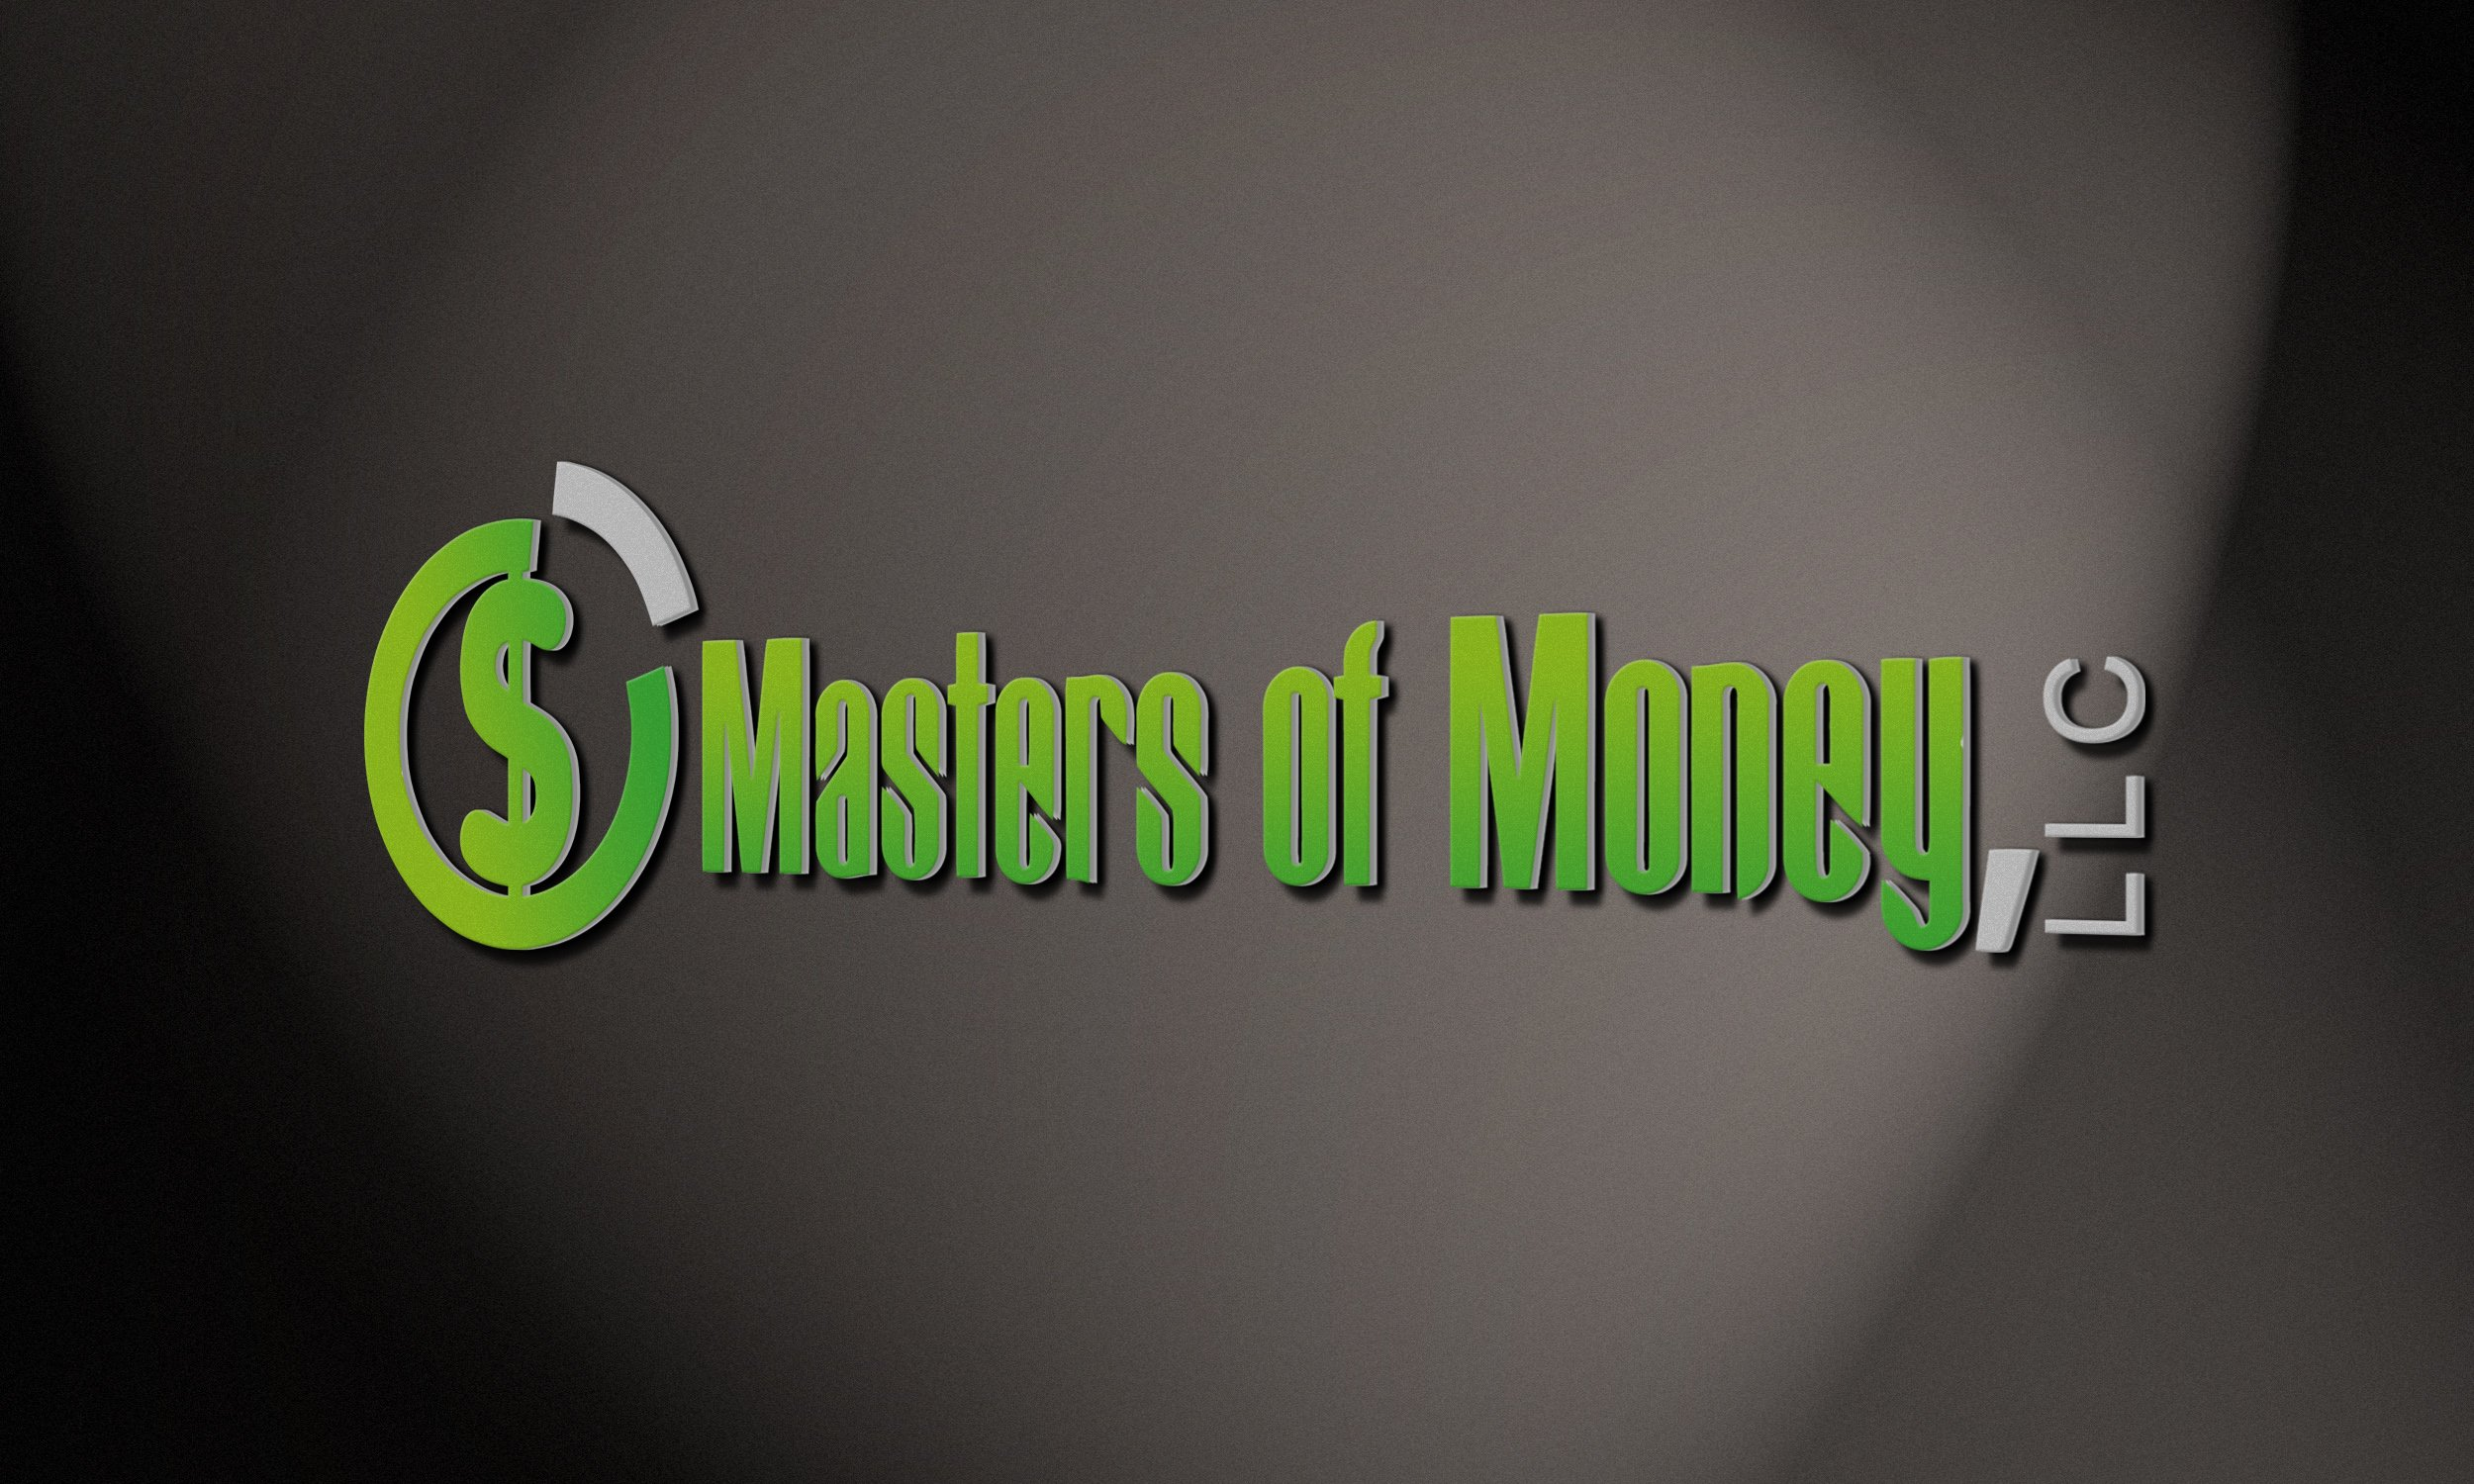 Masters of Money LLC Logo At An Angle Image